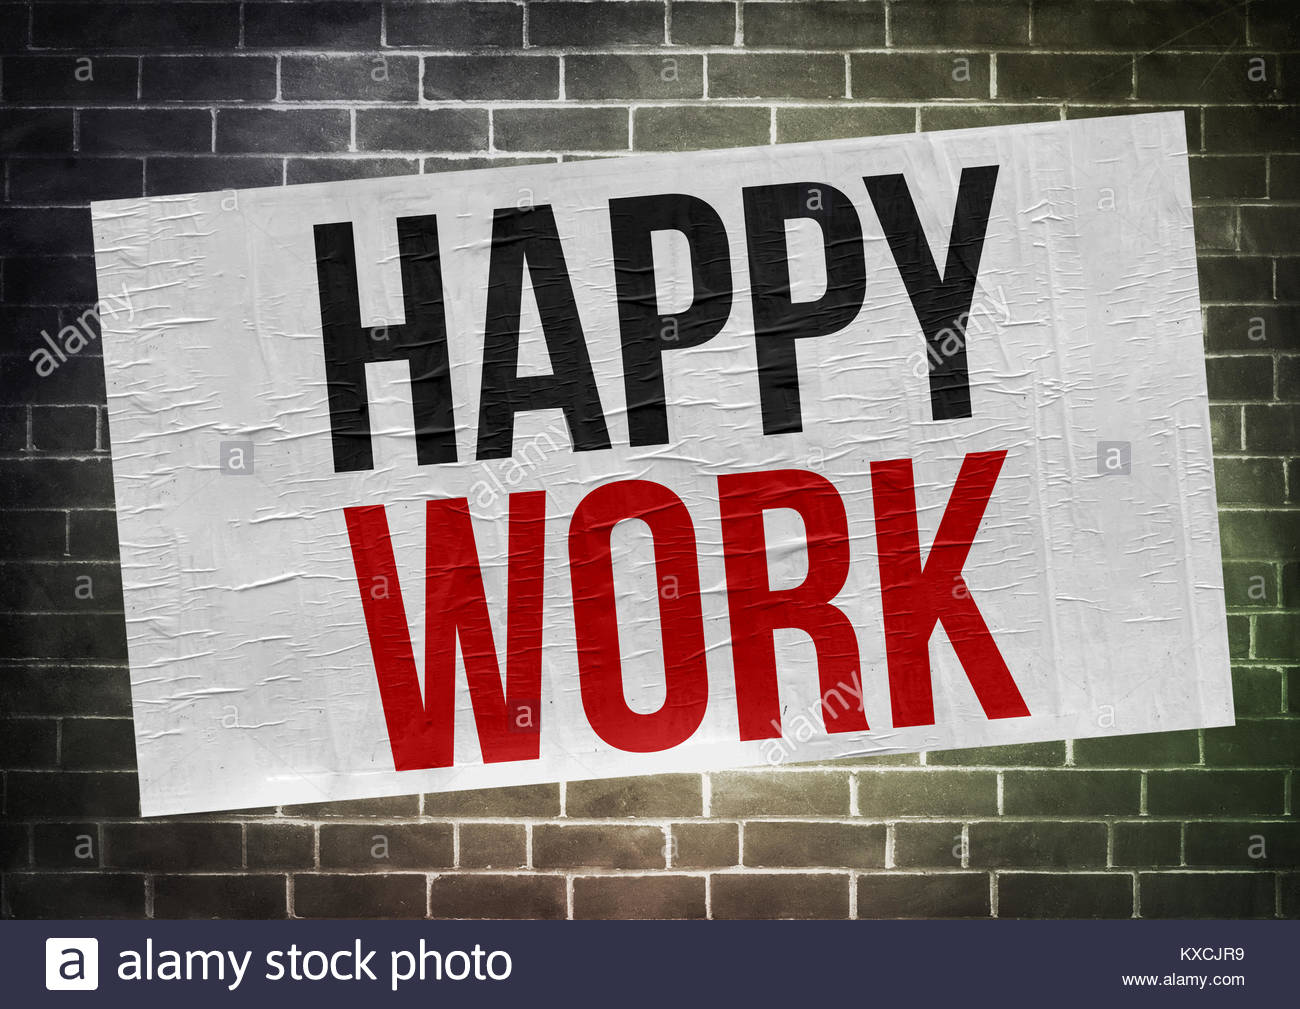 happy work - poster concept - Stock Image